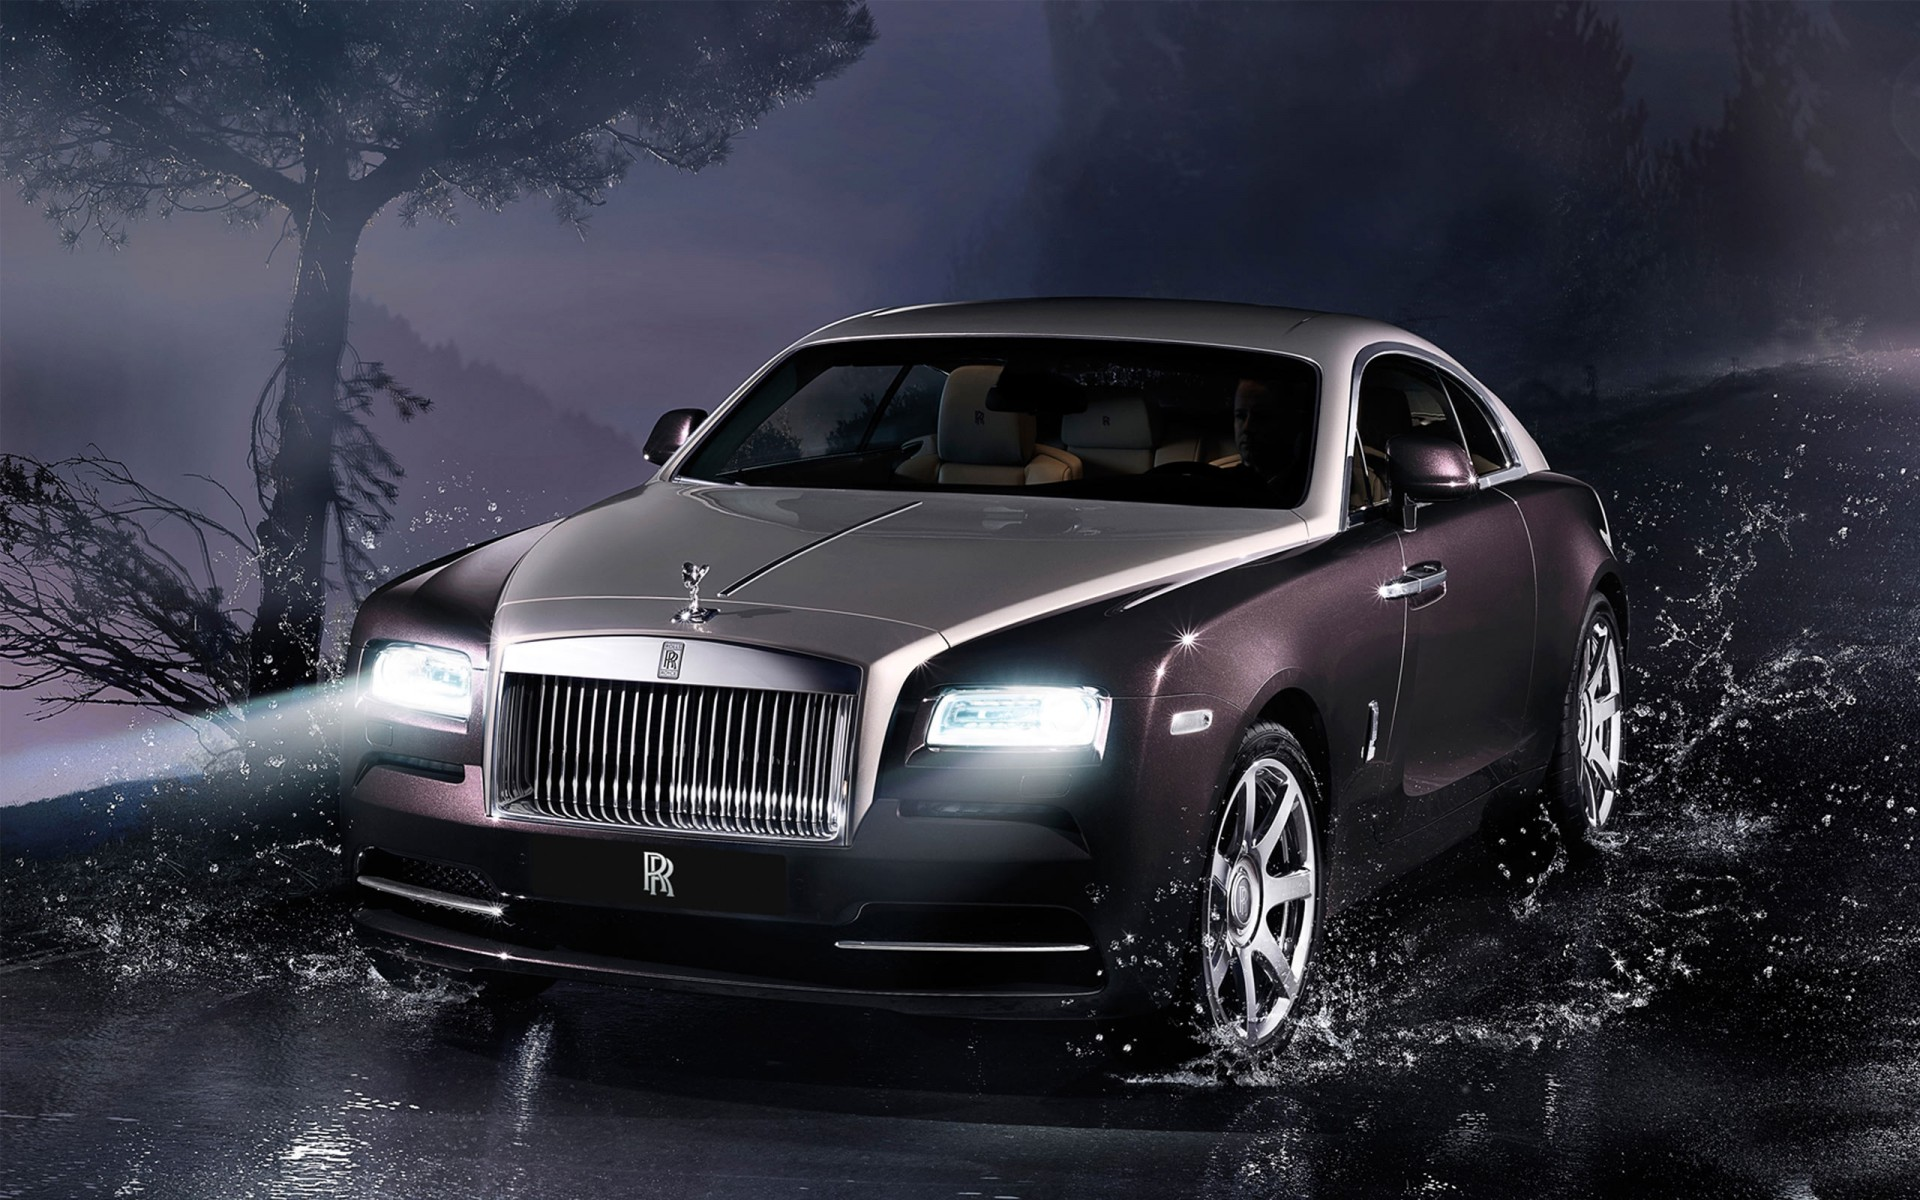 rolls royce wraith 2014 wallpaper hd car wallpapers id 3301. Black Bedroom Furniture Sets. Home Design Ideas